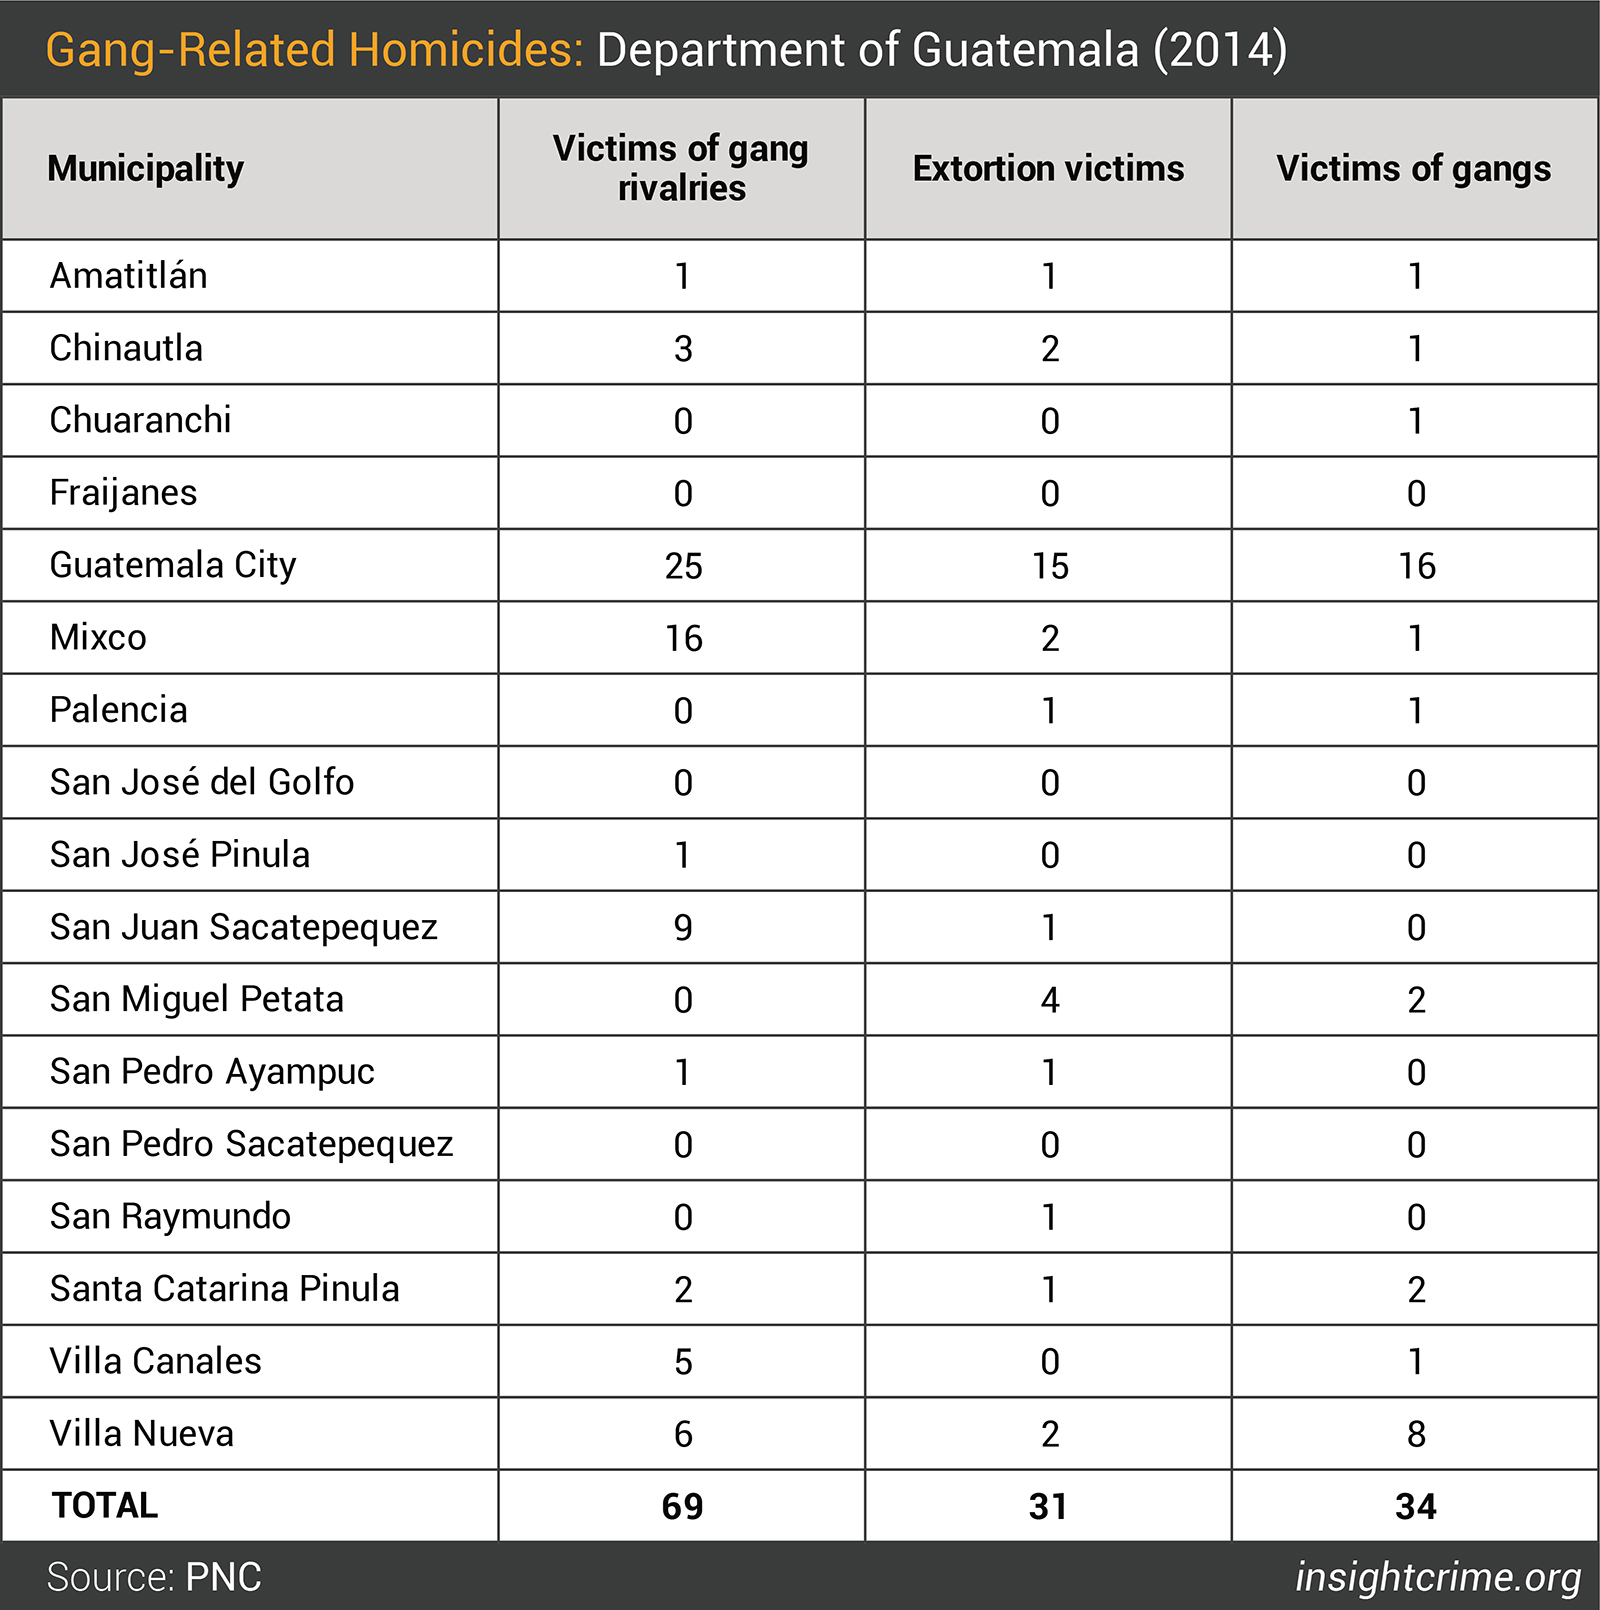 Table-3-Gang-related Homicides - Department of Guatemala - 2014-01